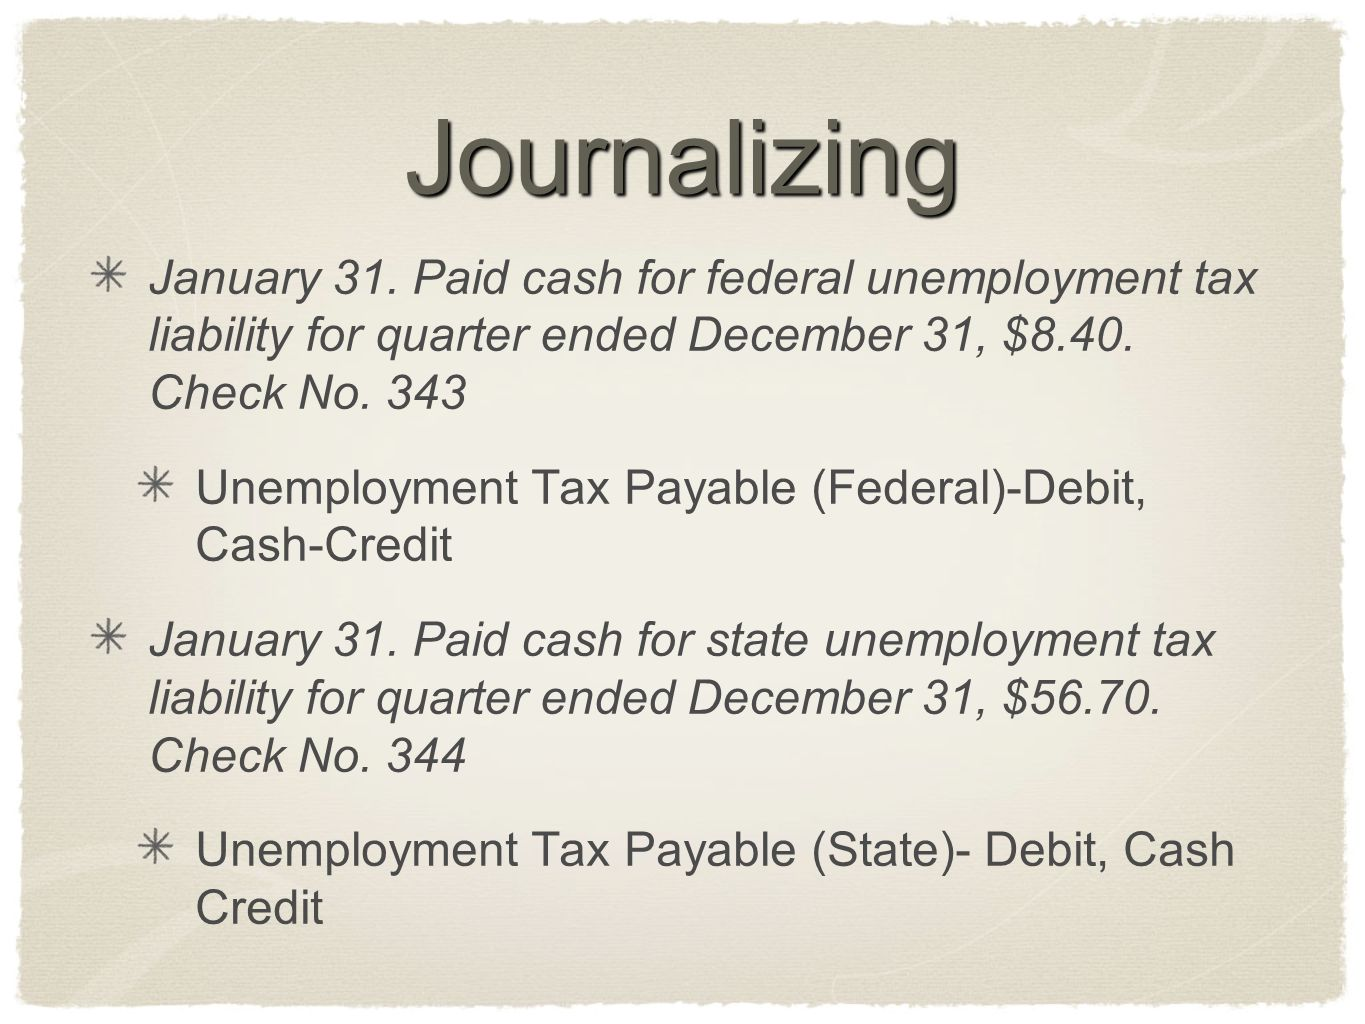 Journalizing January 31. Paid cash for federal unemployment tax liability for quarter ended December 31, $8.40. Check No